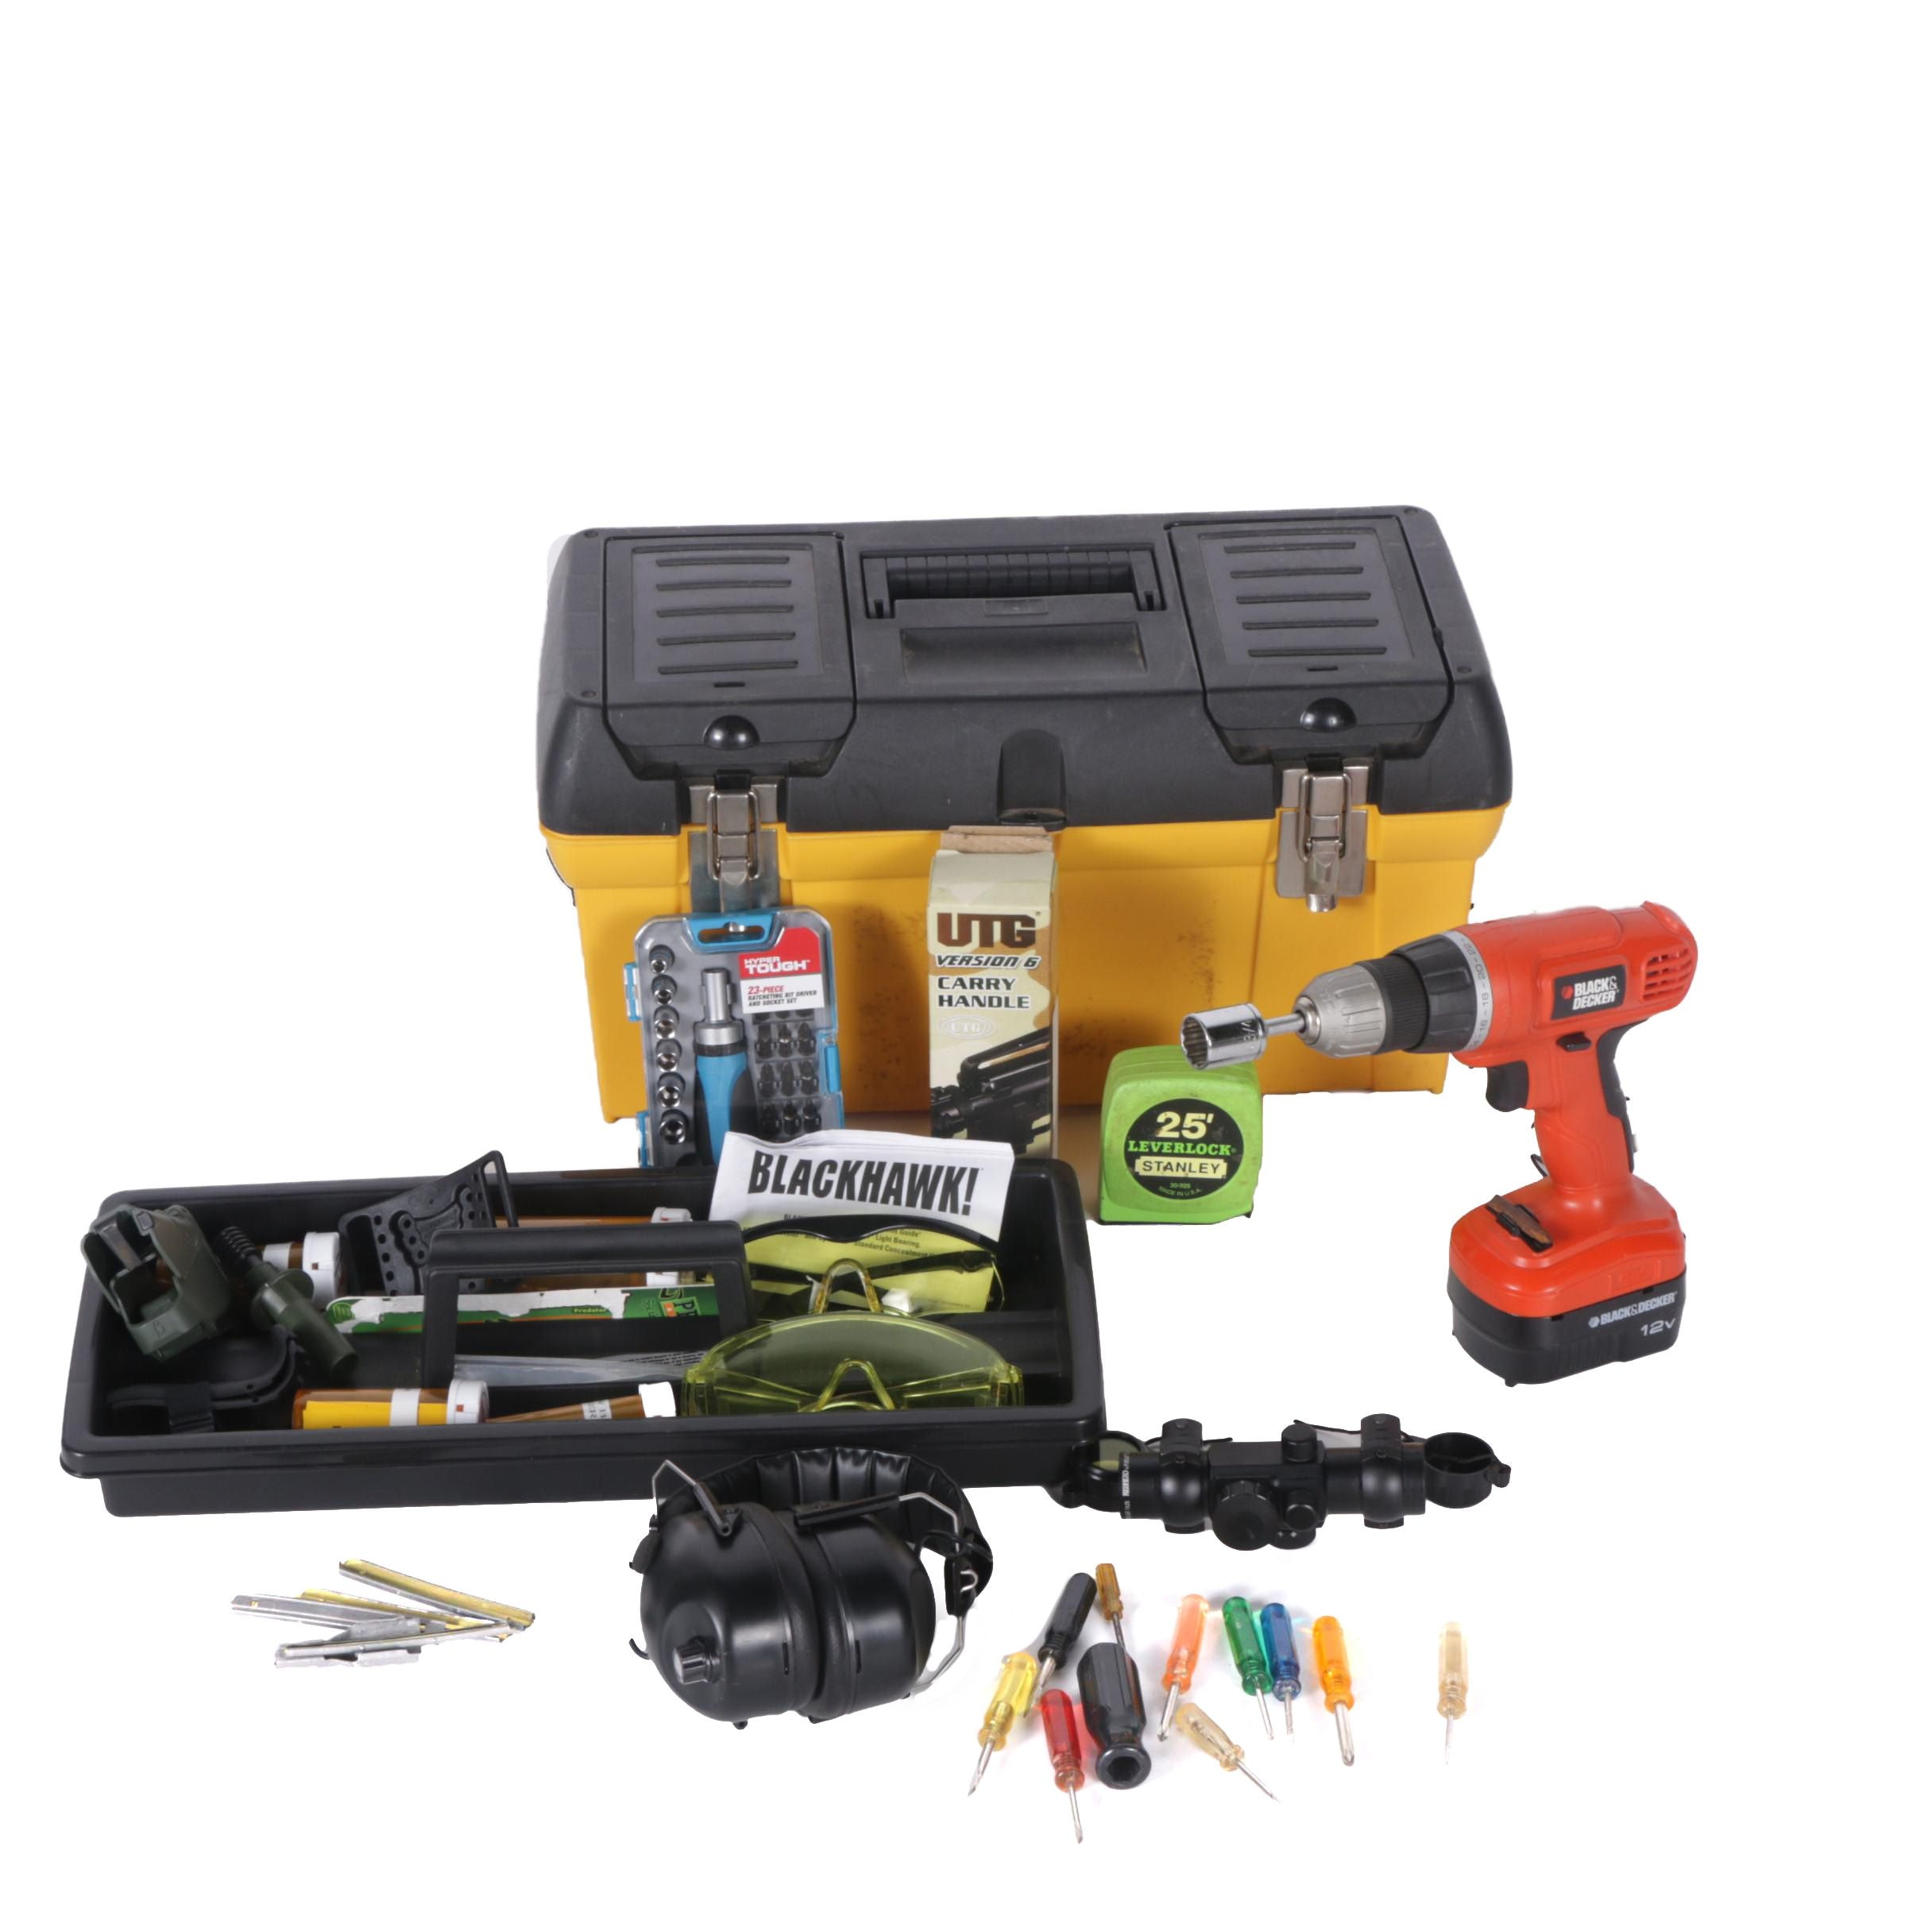 Three Plastic Toolboxes, Cordless Drill and Safety Ear Muffs